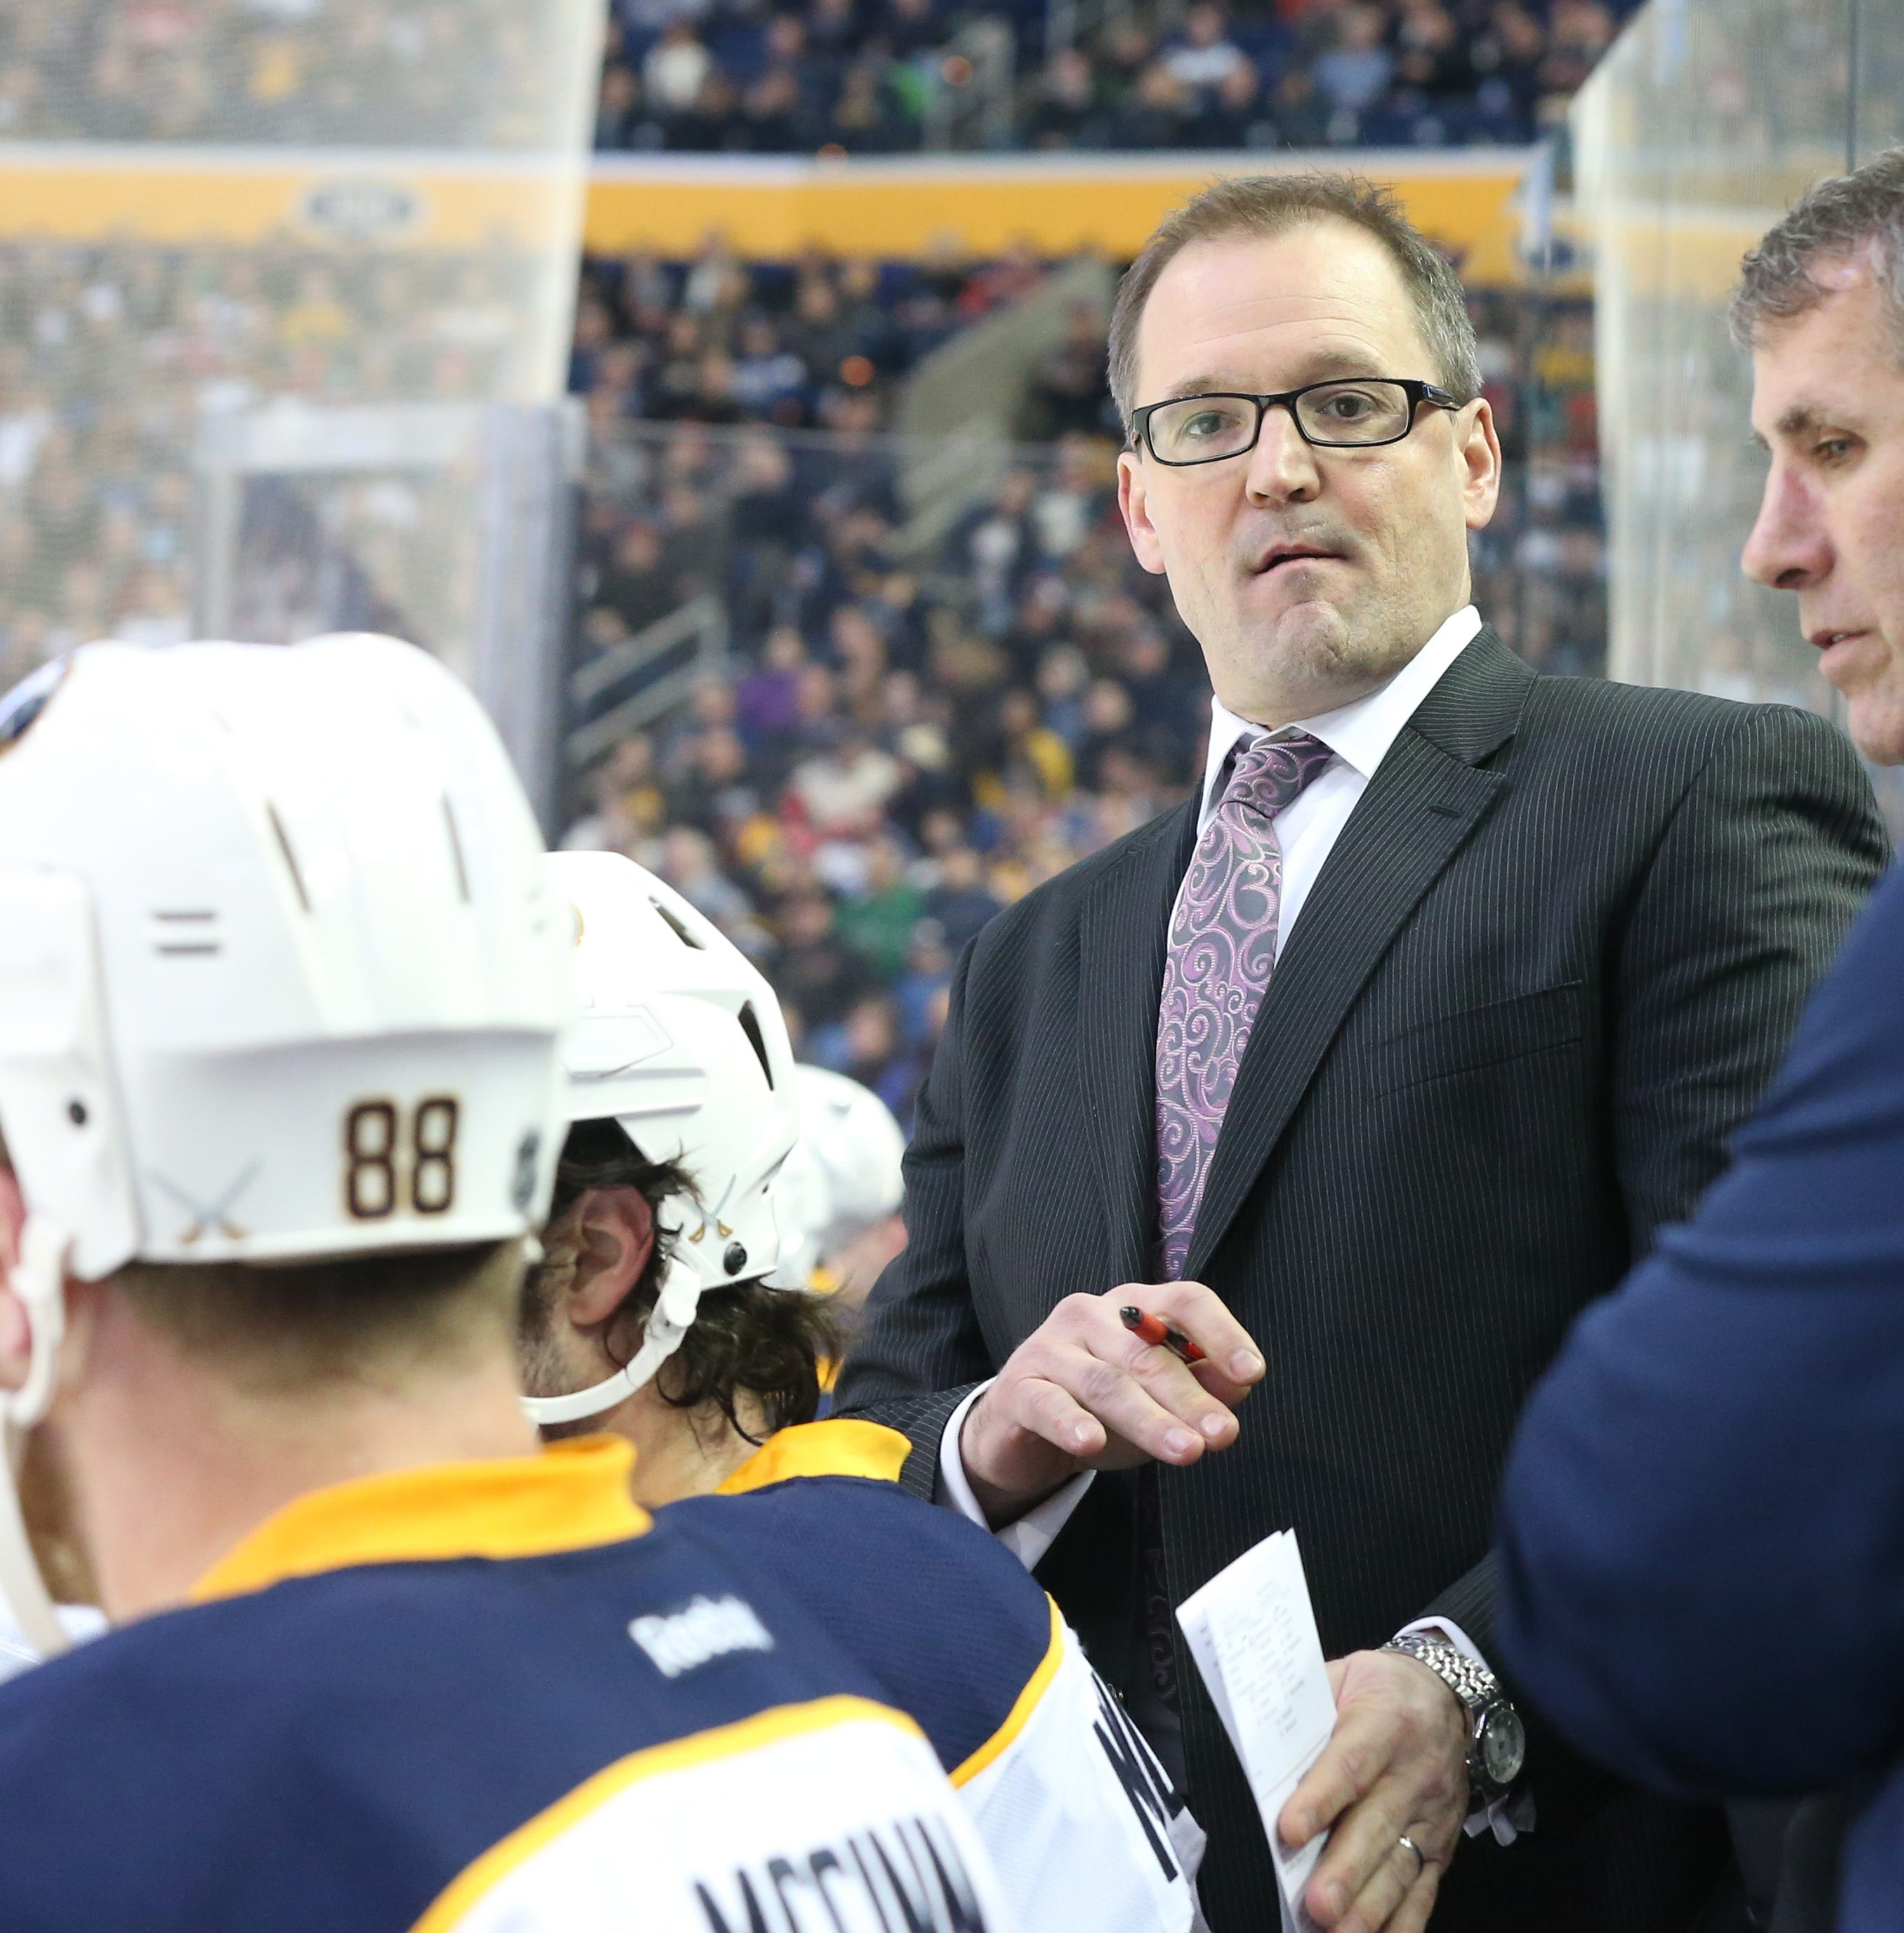 Sabres head coach Dan Bylsma is starting to feel a little heat for his team's play so far this season.